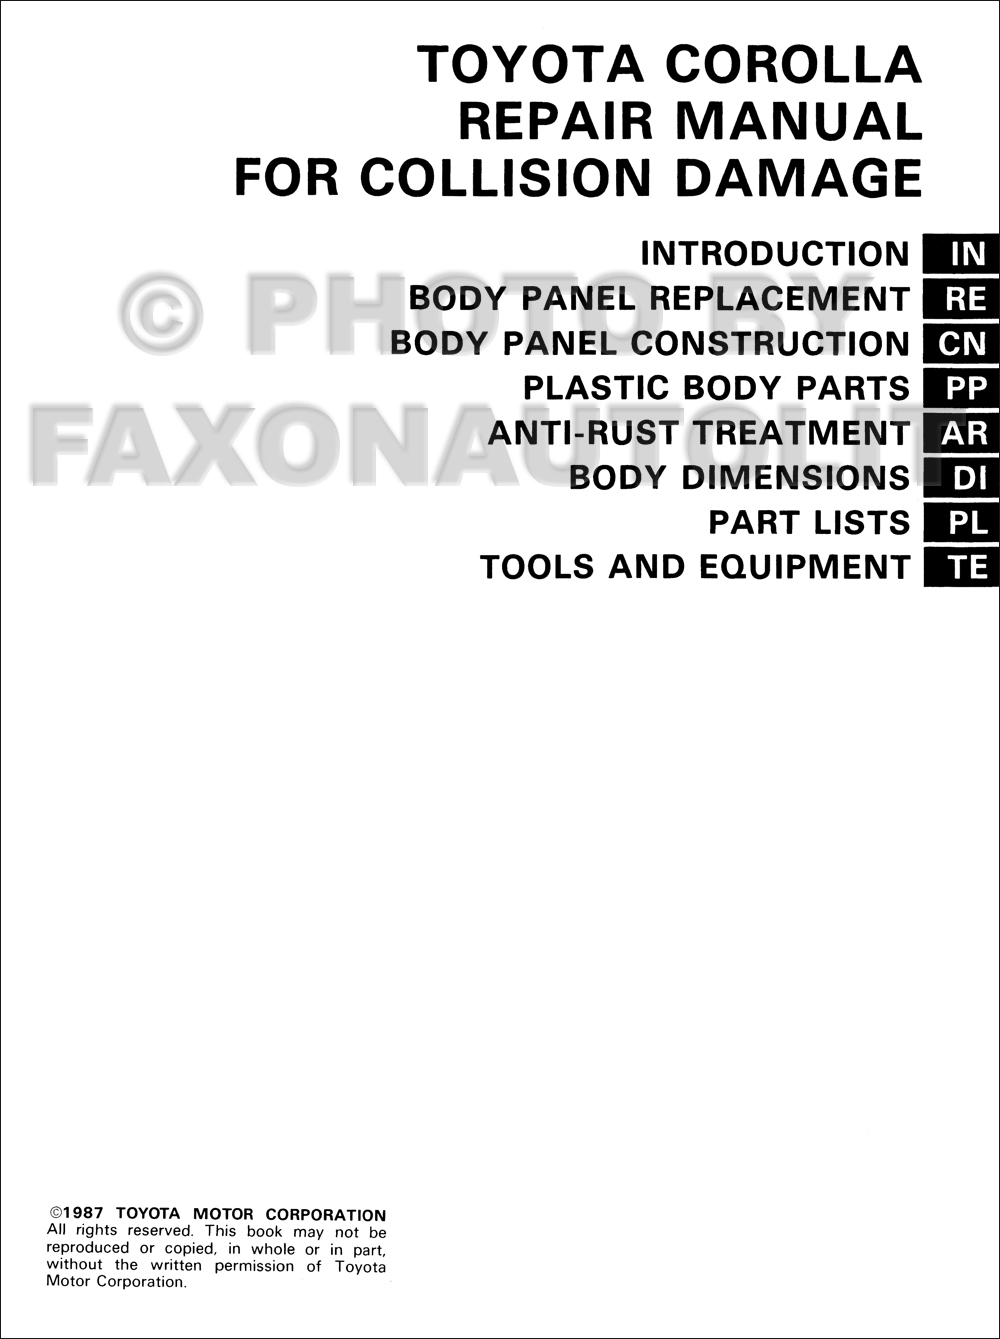 1988-1992 Toyota Corolla Body Collision Manual Factory Reprint. click on  thumbnail to zoom